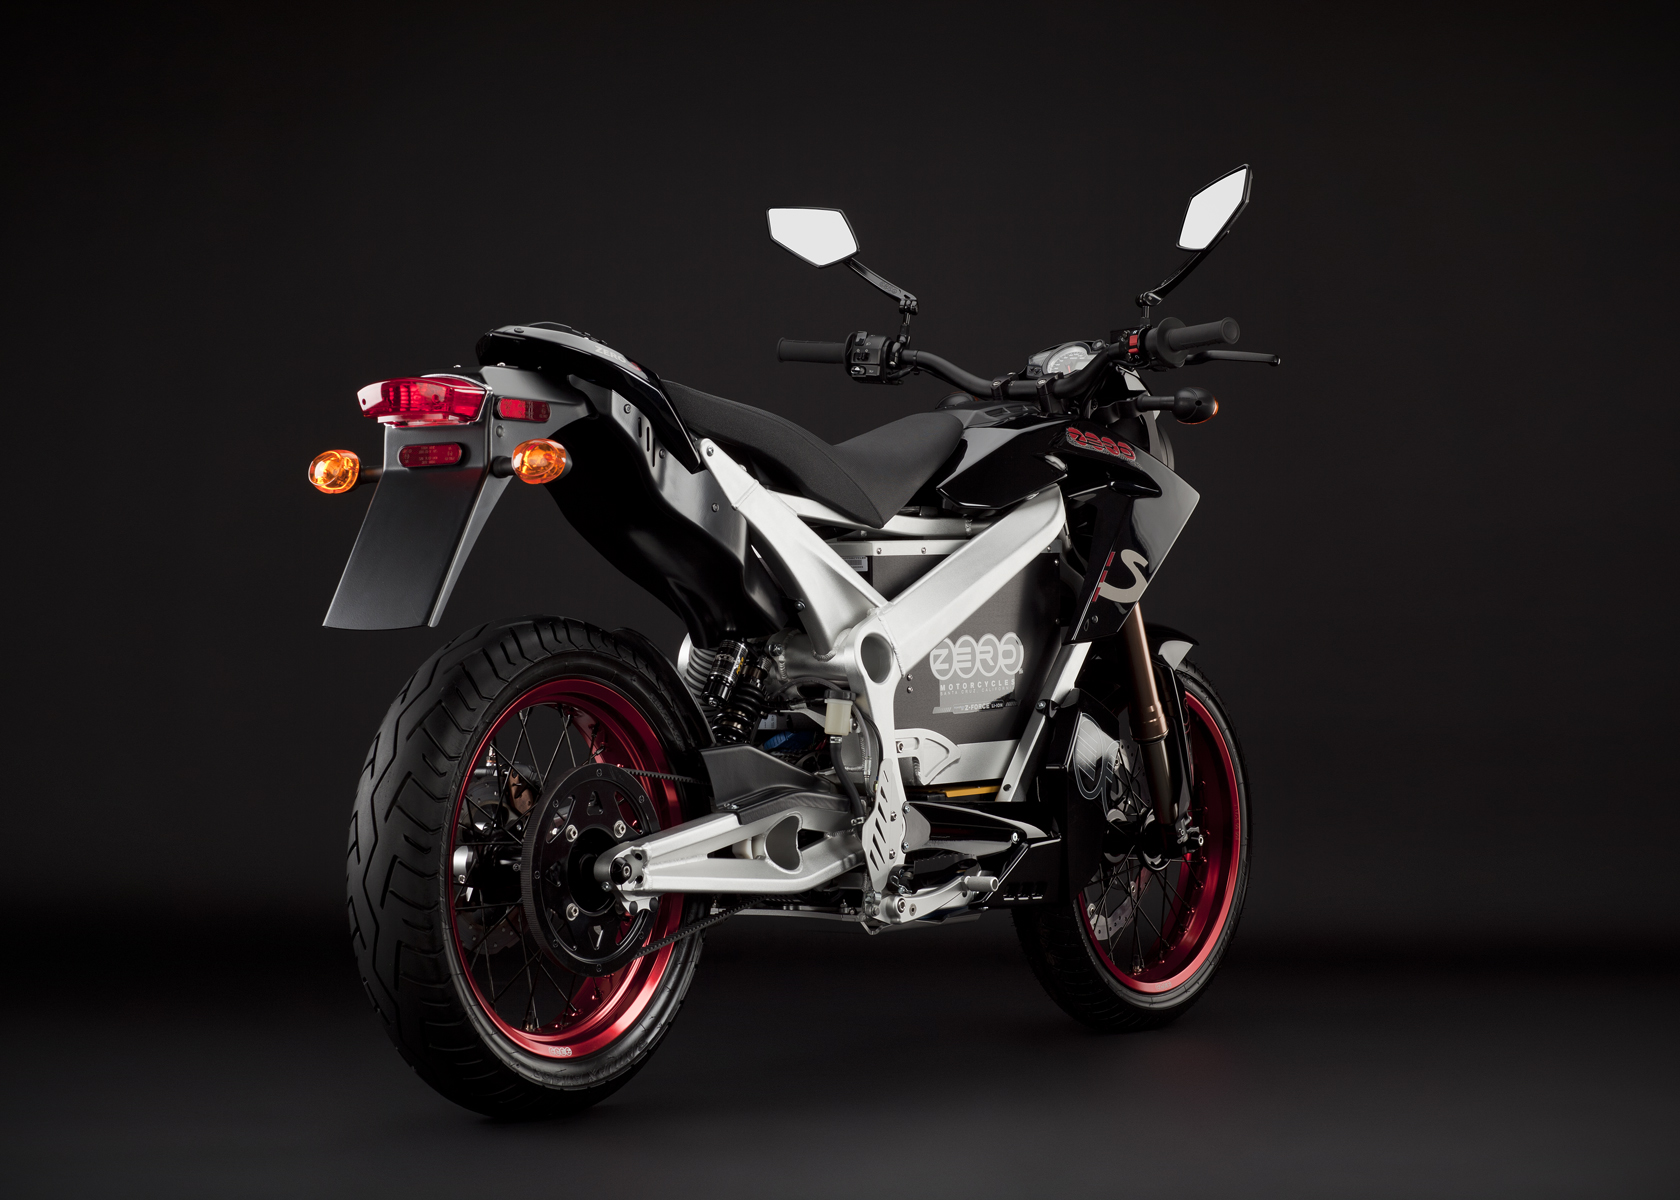 2011 Zero S Electric Motorcycle: Black Angle, Rear View